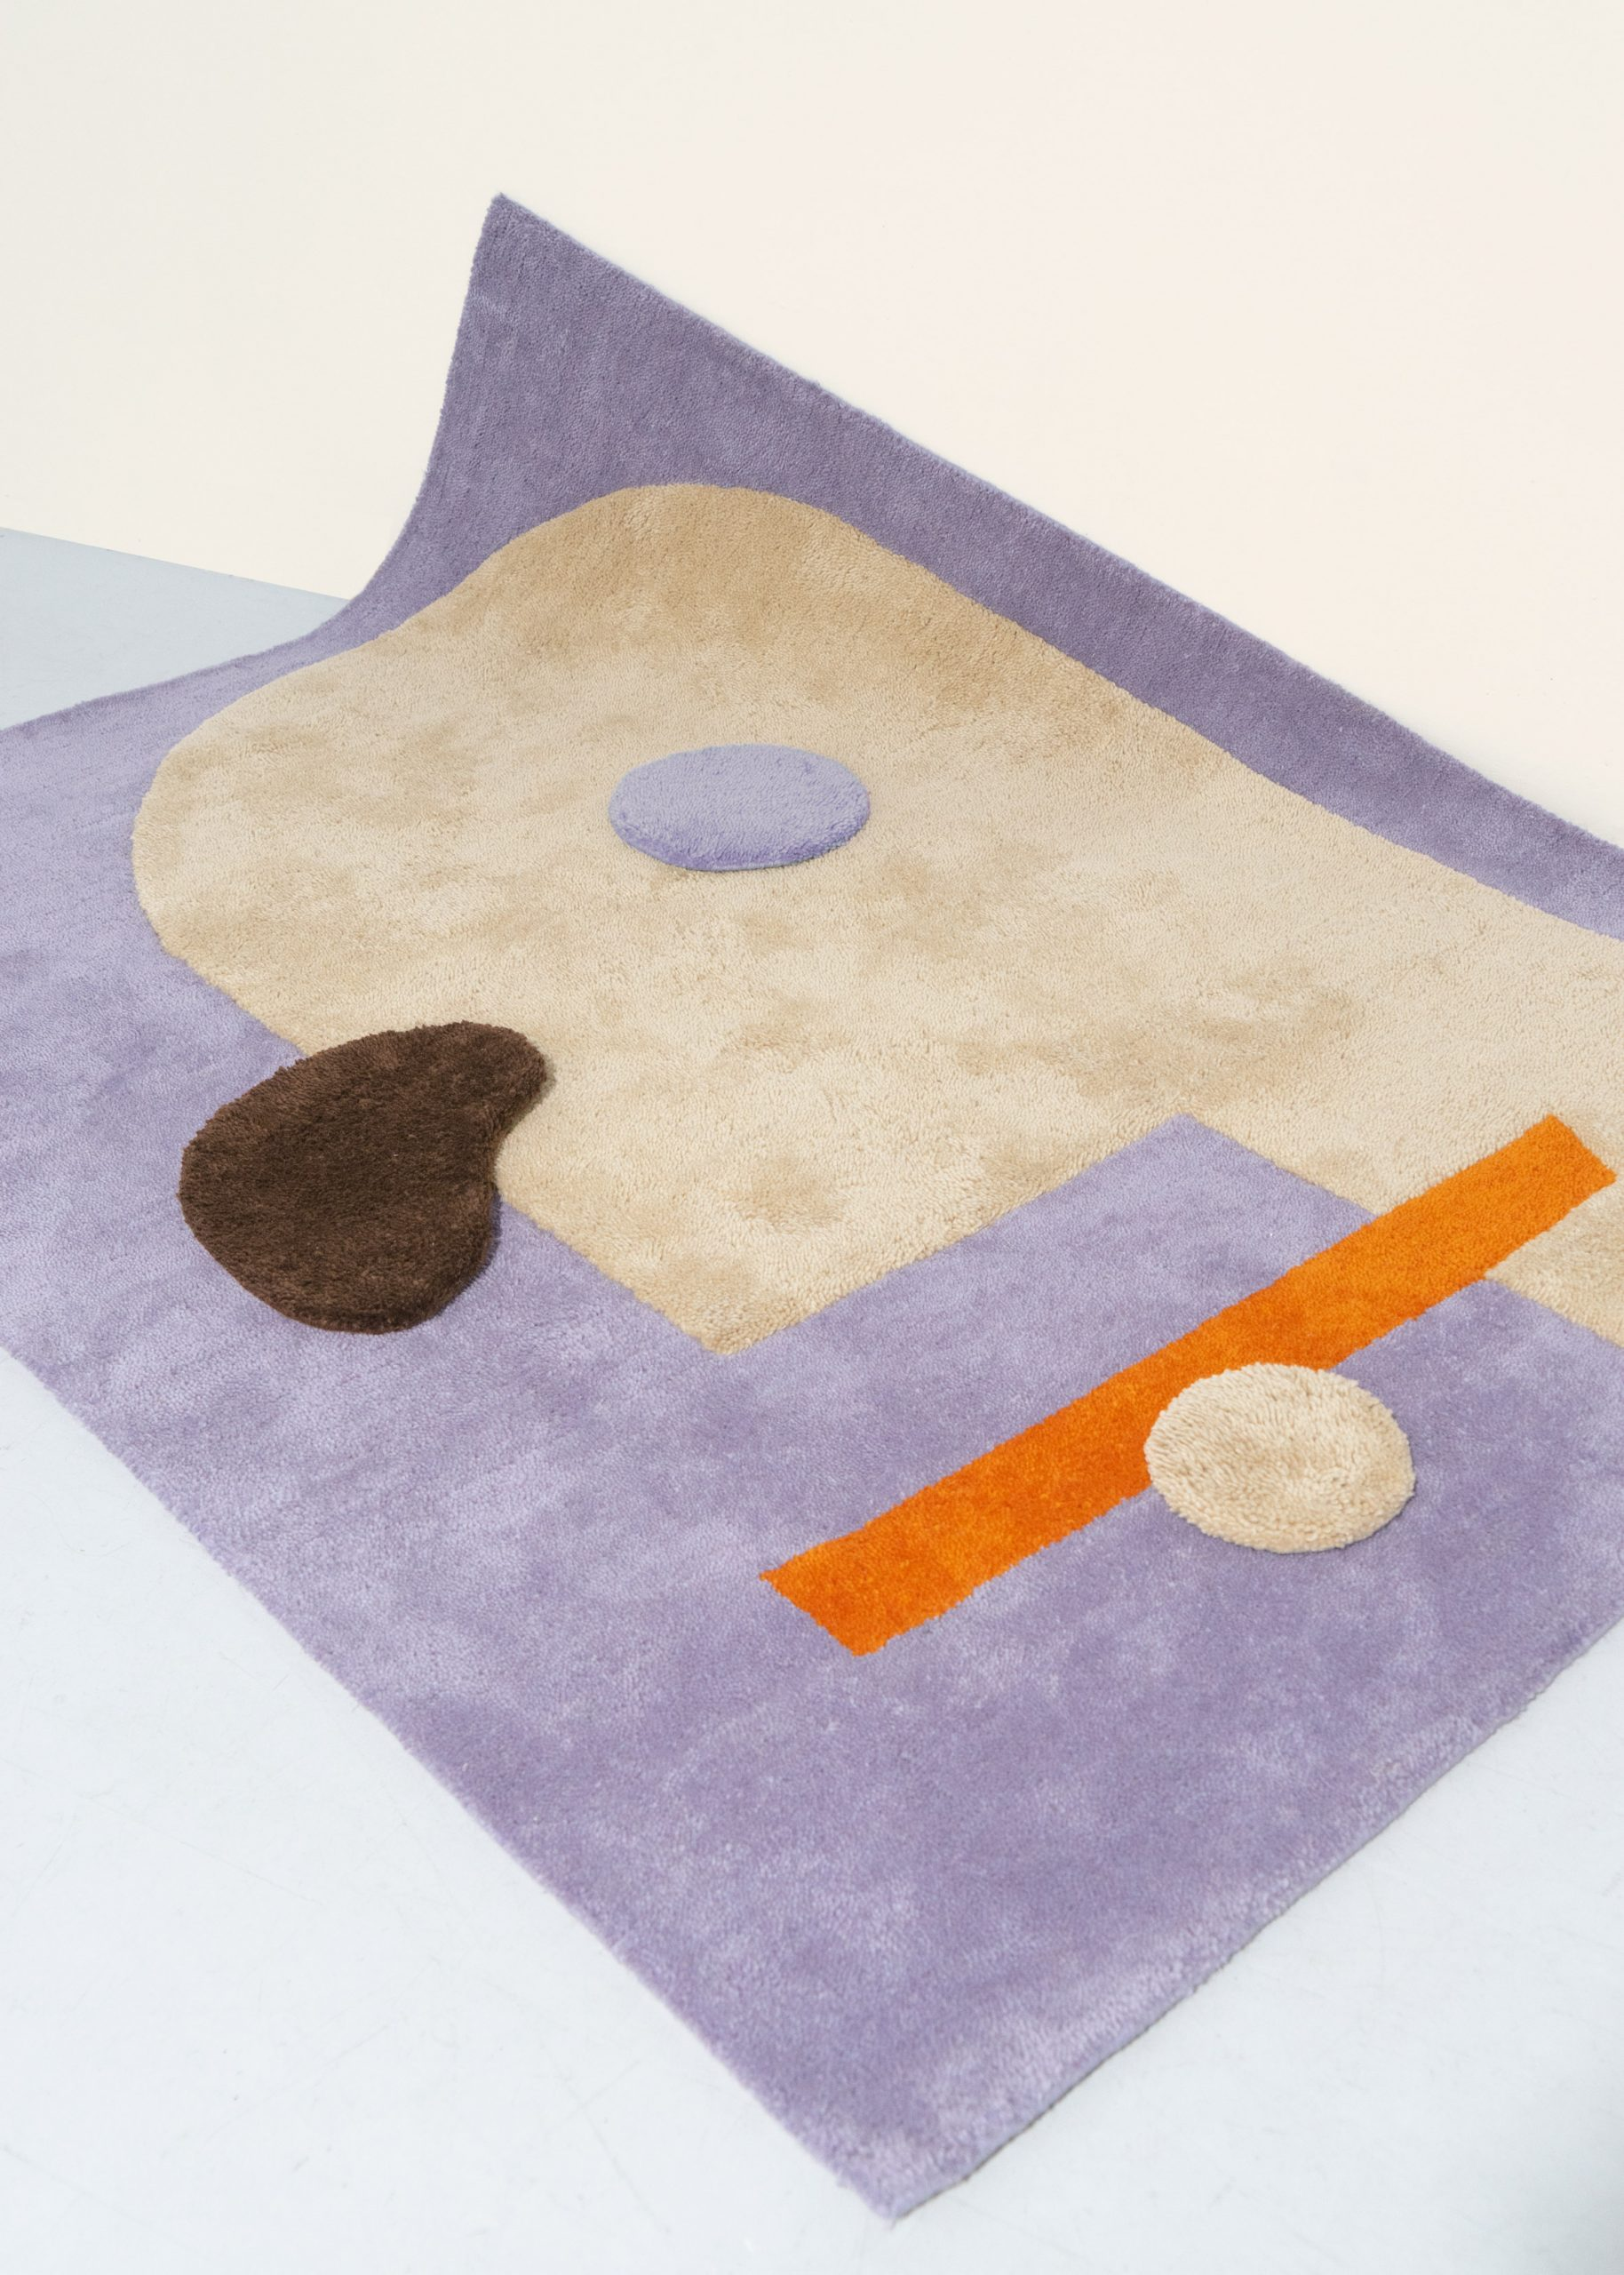 Lilac Playground rug from Petite collection by Layered